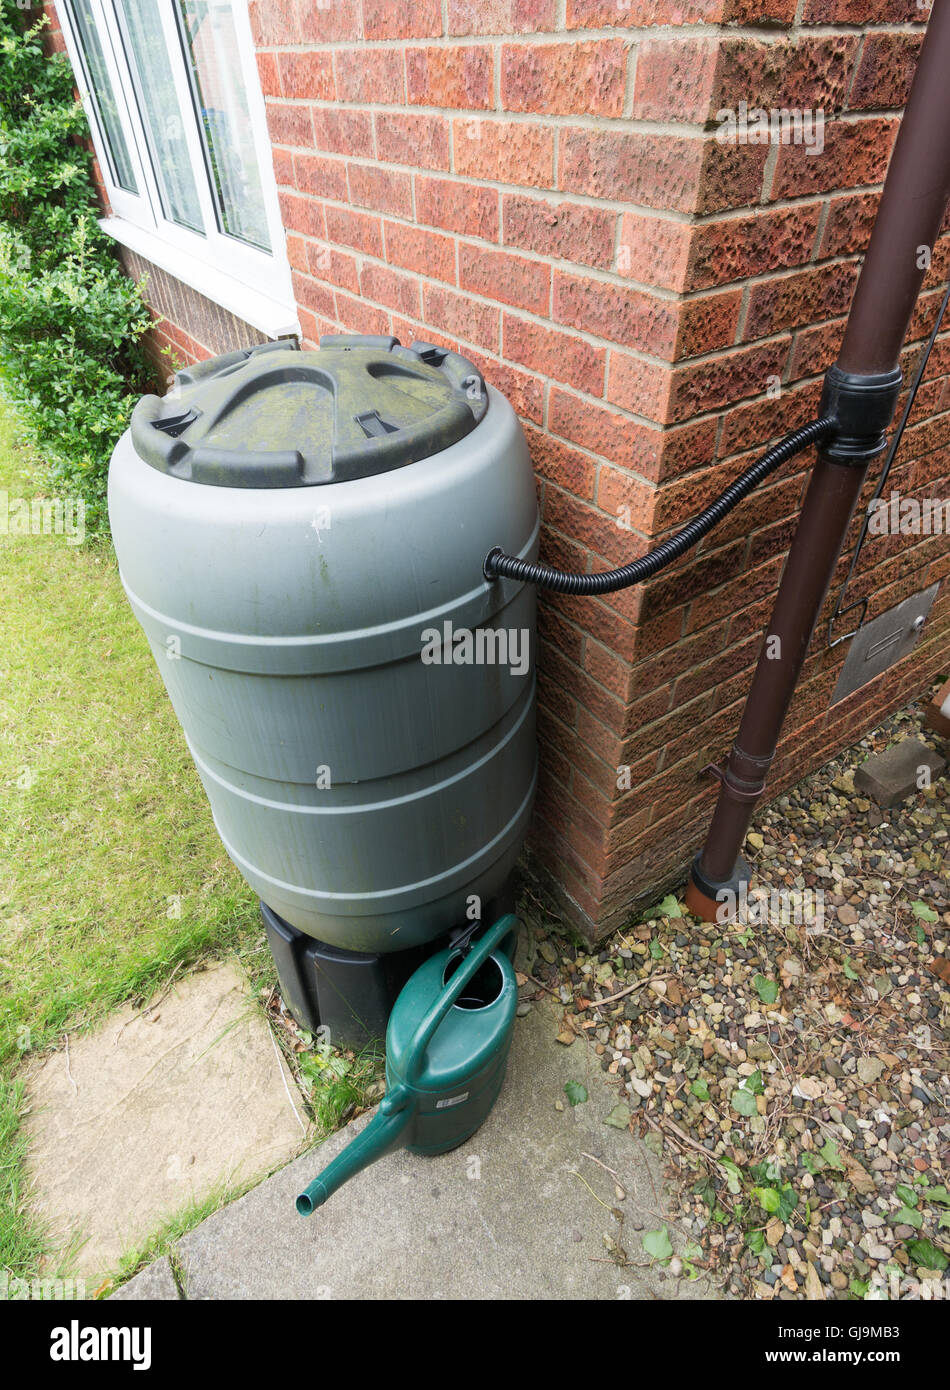 Garden Rainwater Collection And Storage System, With Rainwater Diverter,  Water Butt And Watering Can